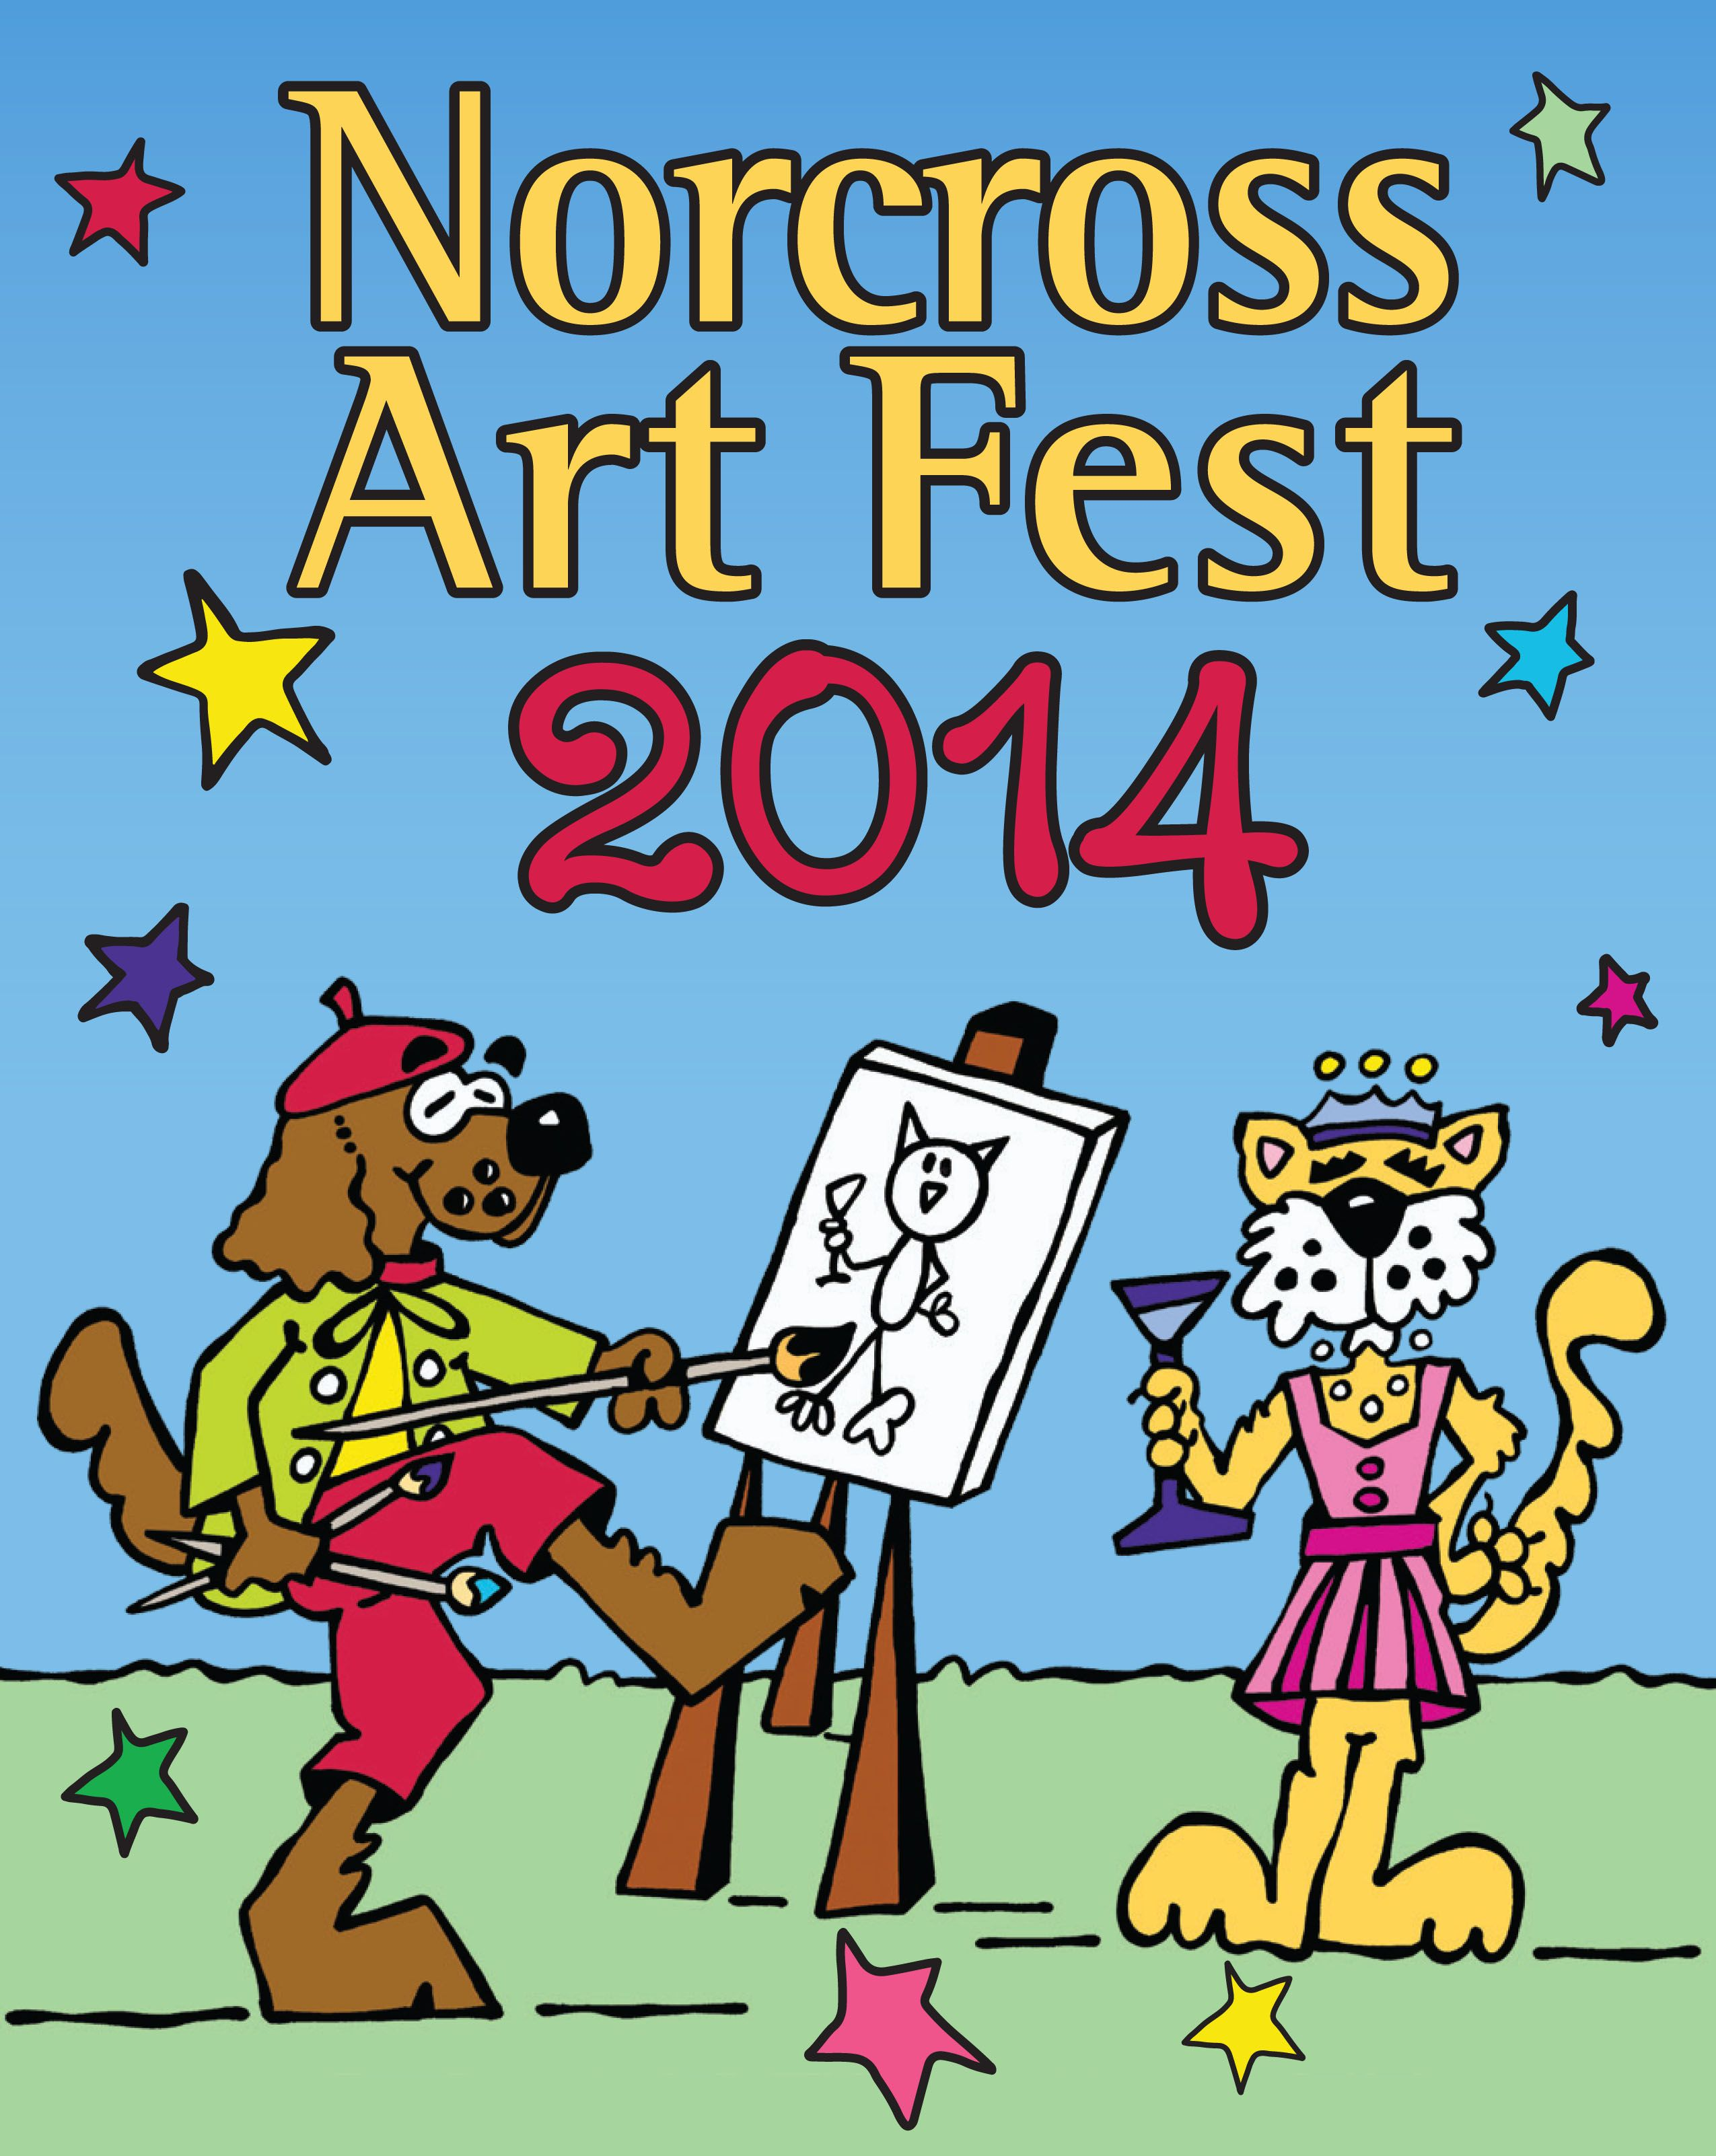 Norcross Art Fest The Festival With Personalitycheck it